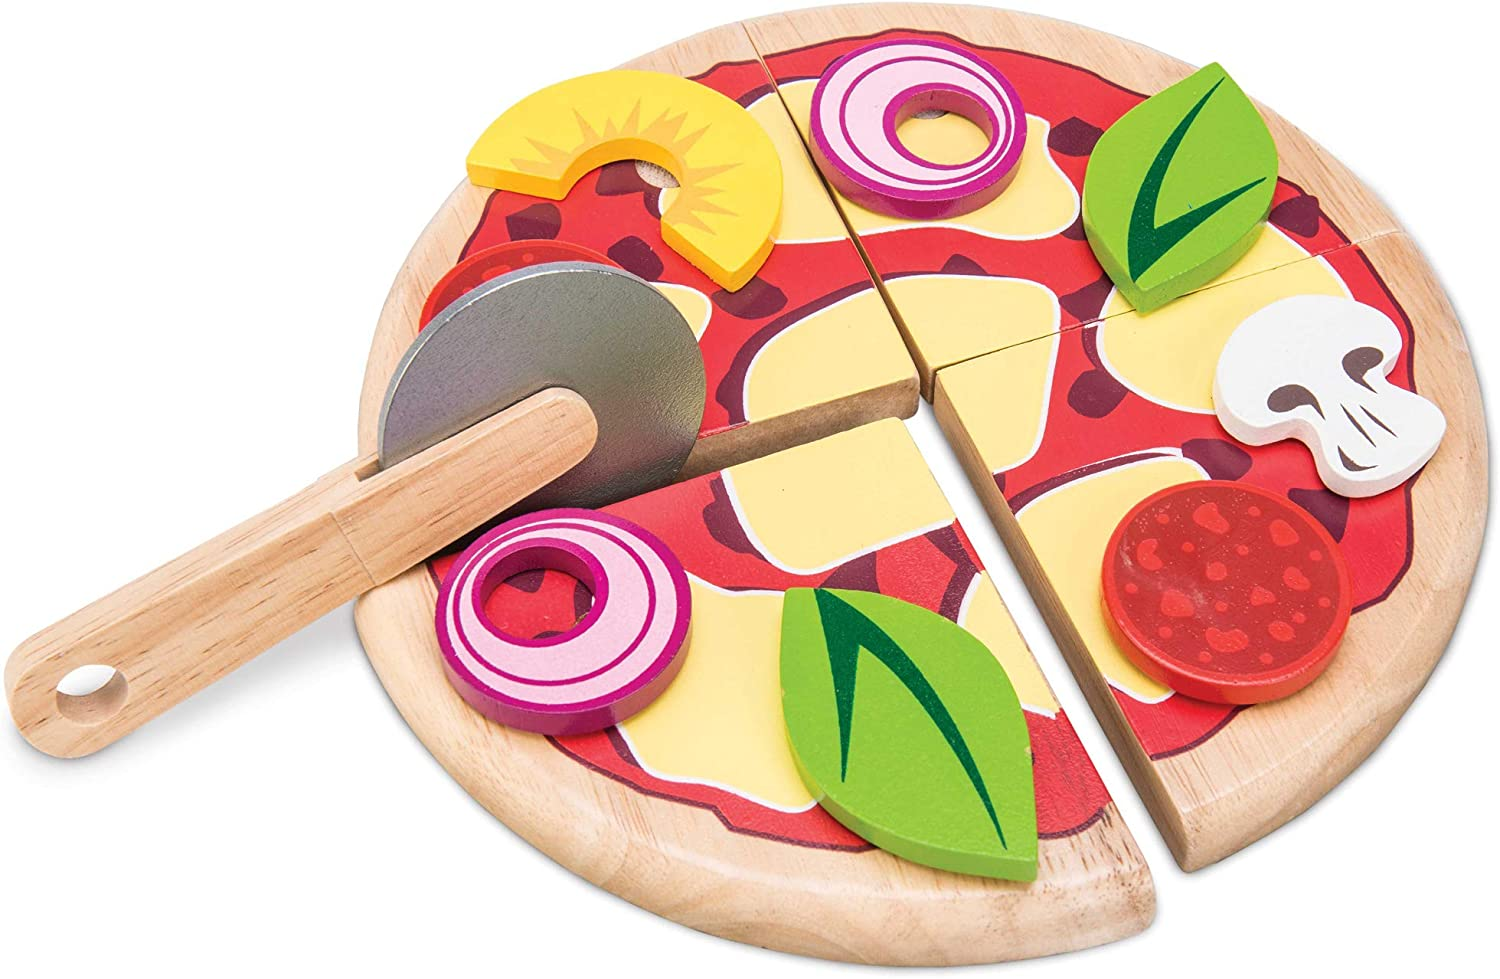 Le Toy Van Honeybake Collection Create Your Own Pizza Set Premium Wooden Toys for Kids Ages 3 years & Up